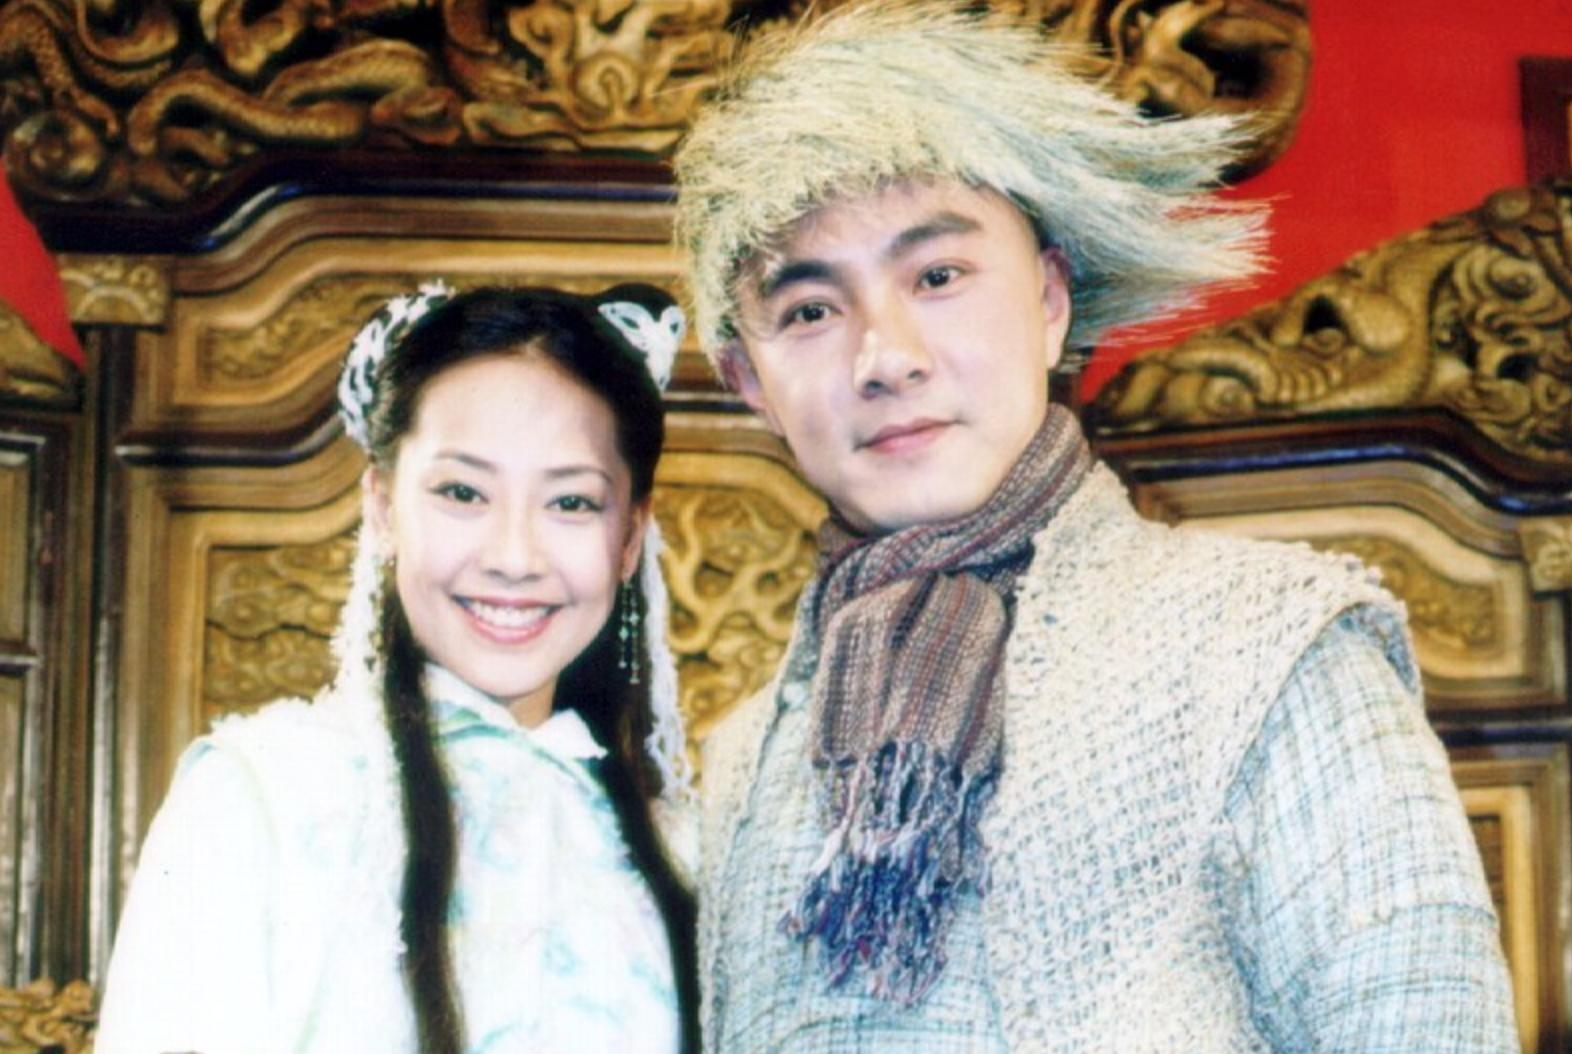 Dicky Cheung and Jess Zhang in The Duke of Mount Deer (2000)